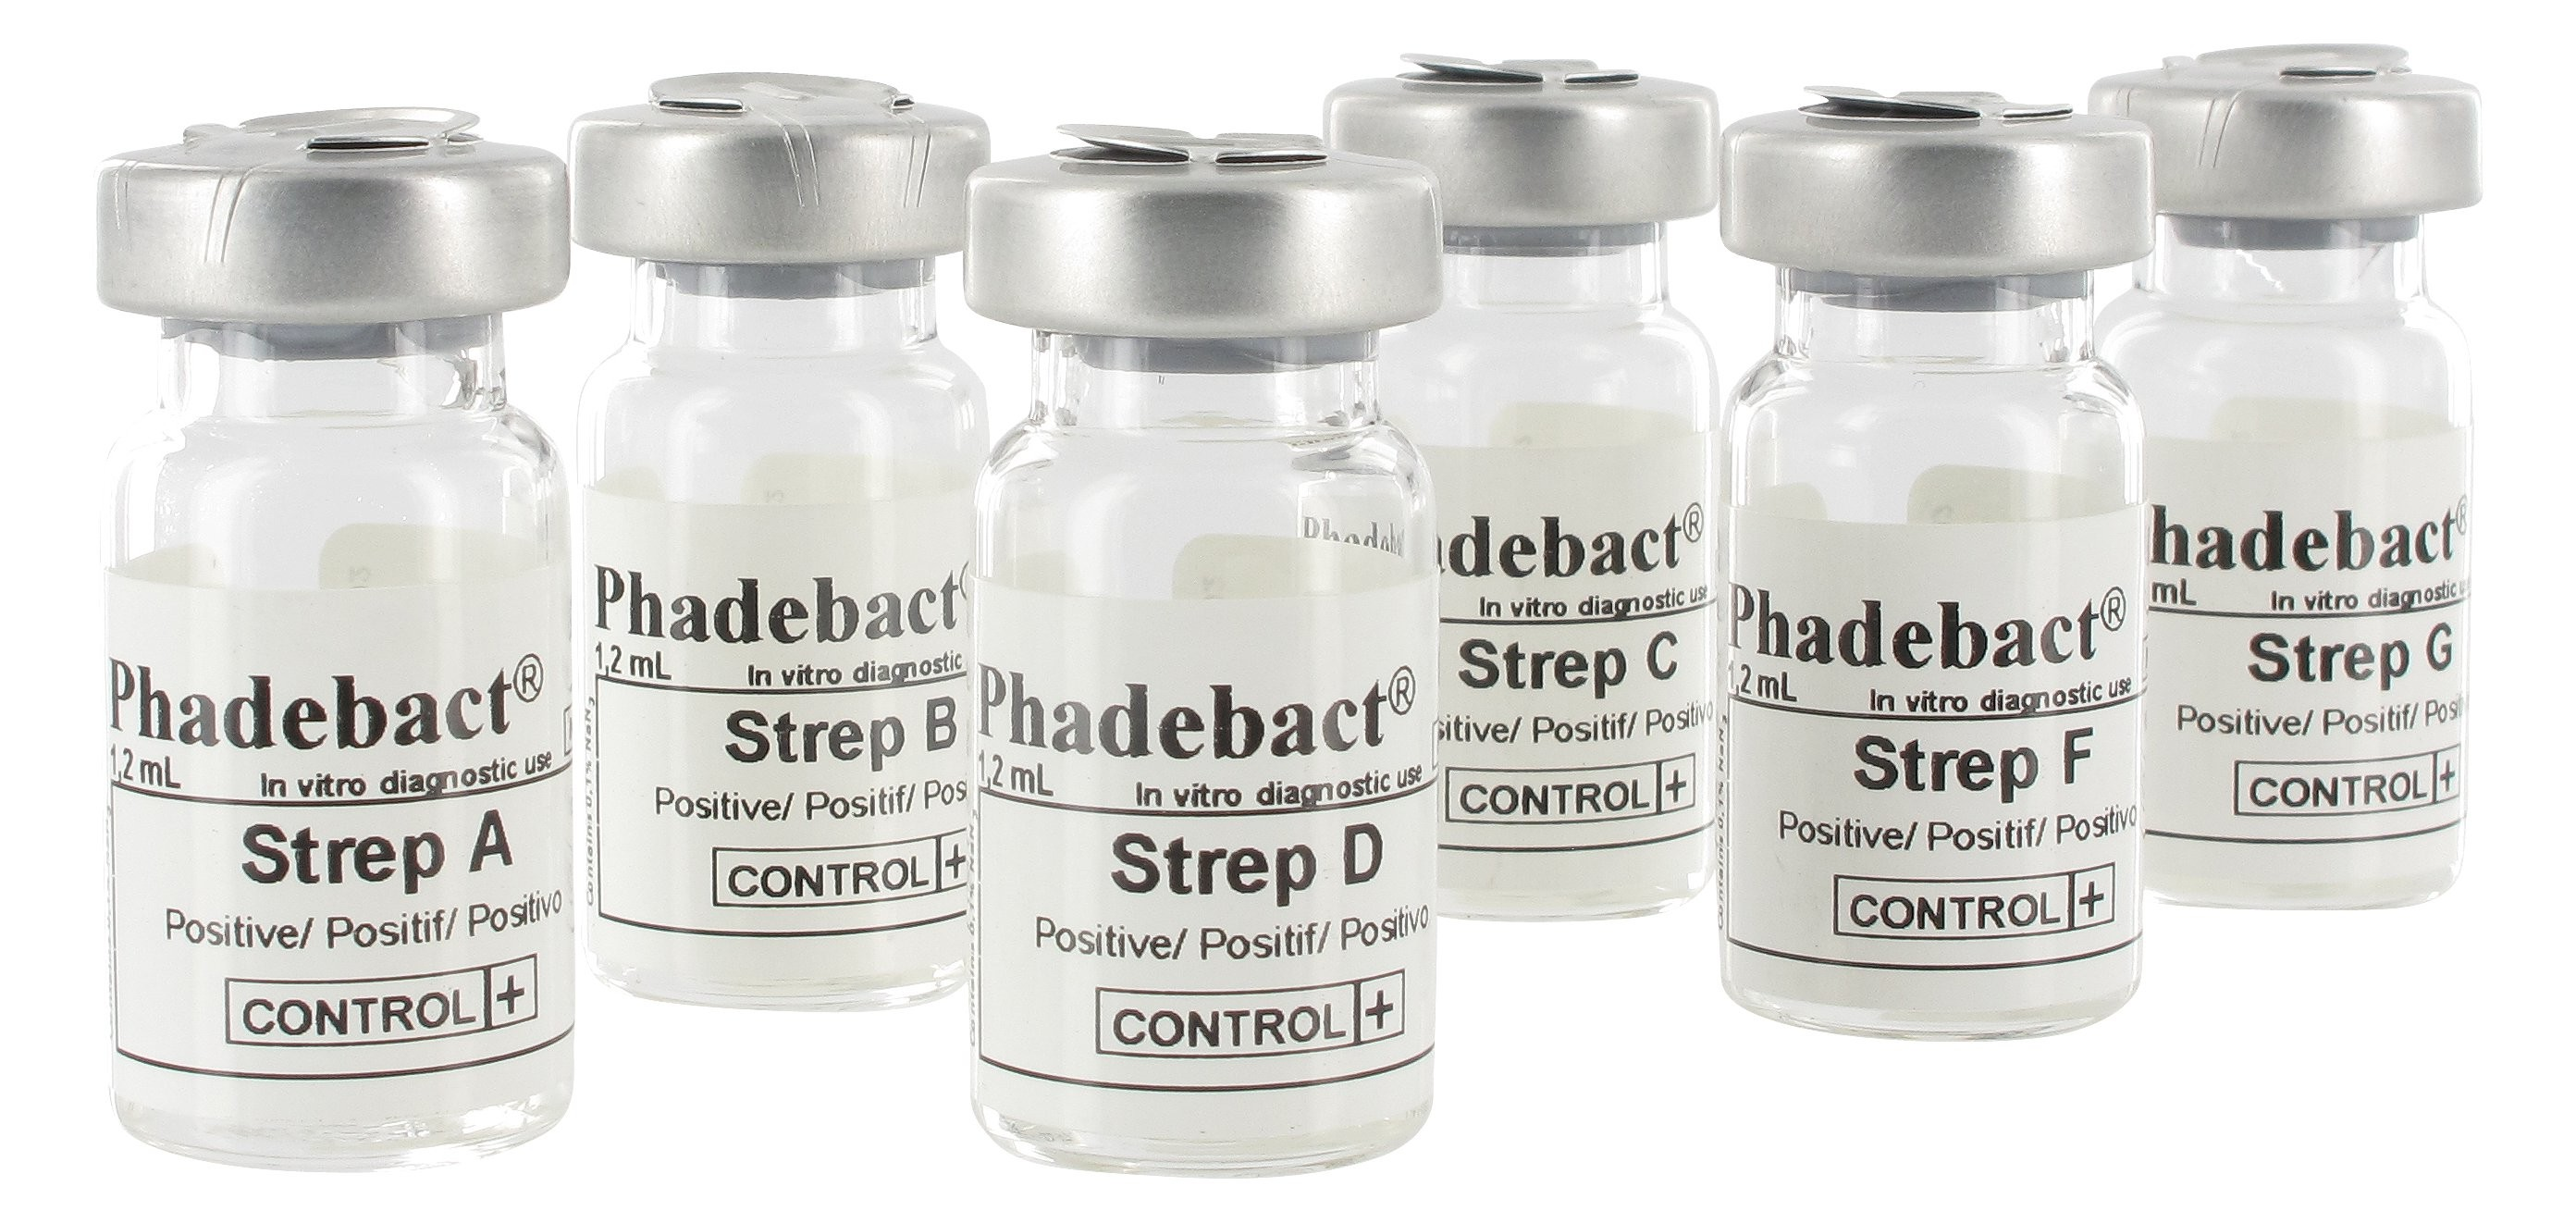 Phadebact Strep Positive Controls